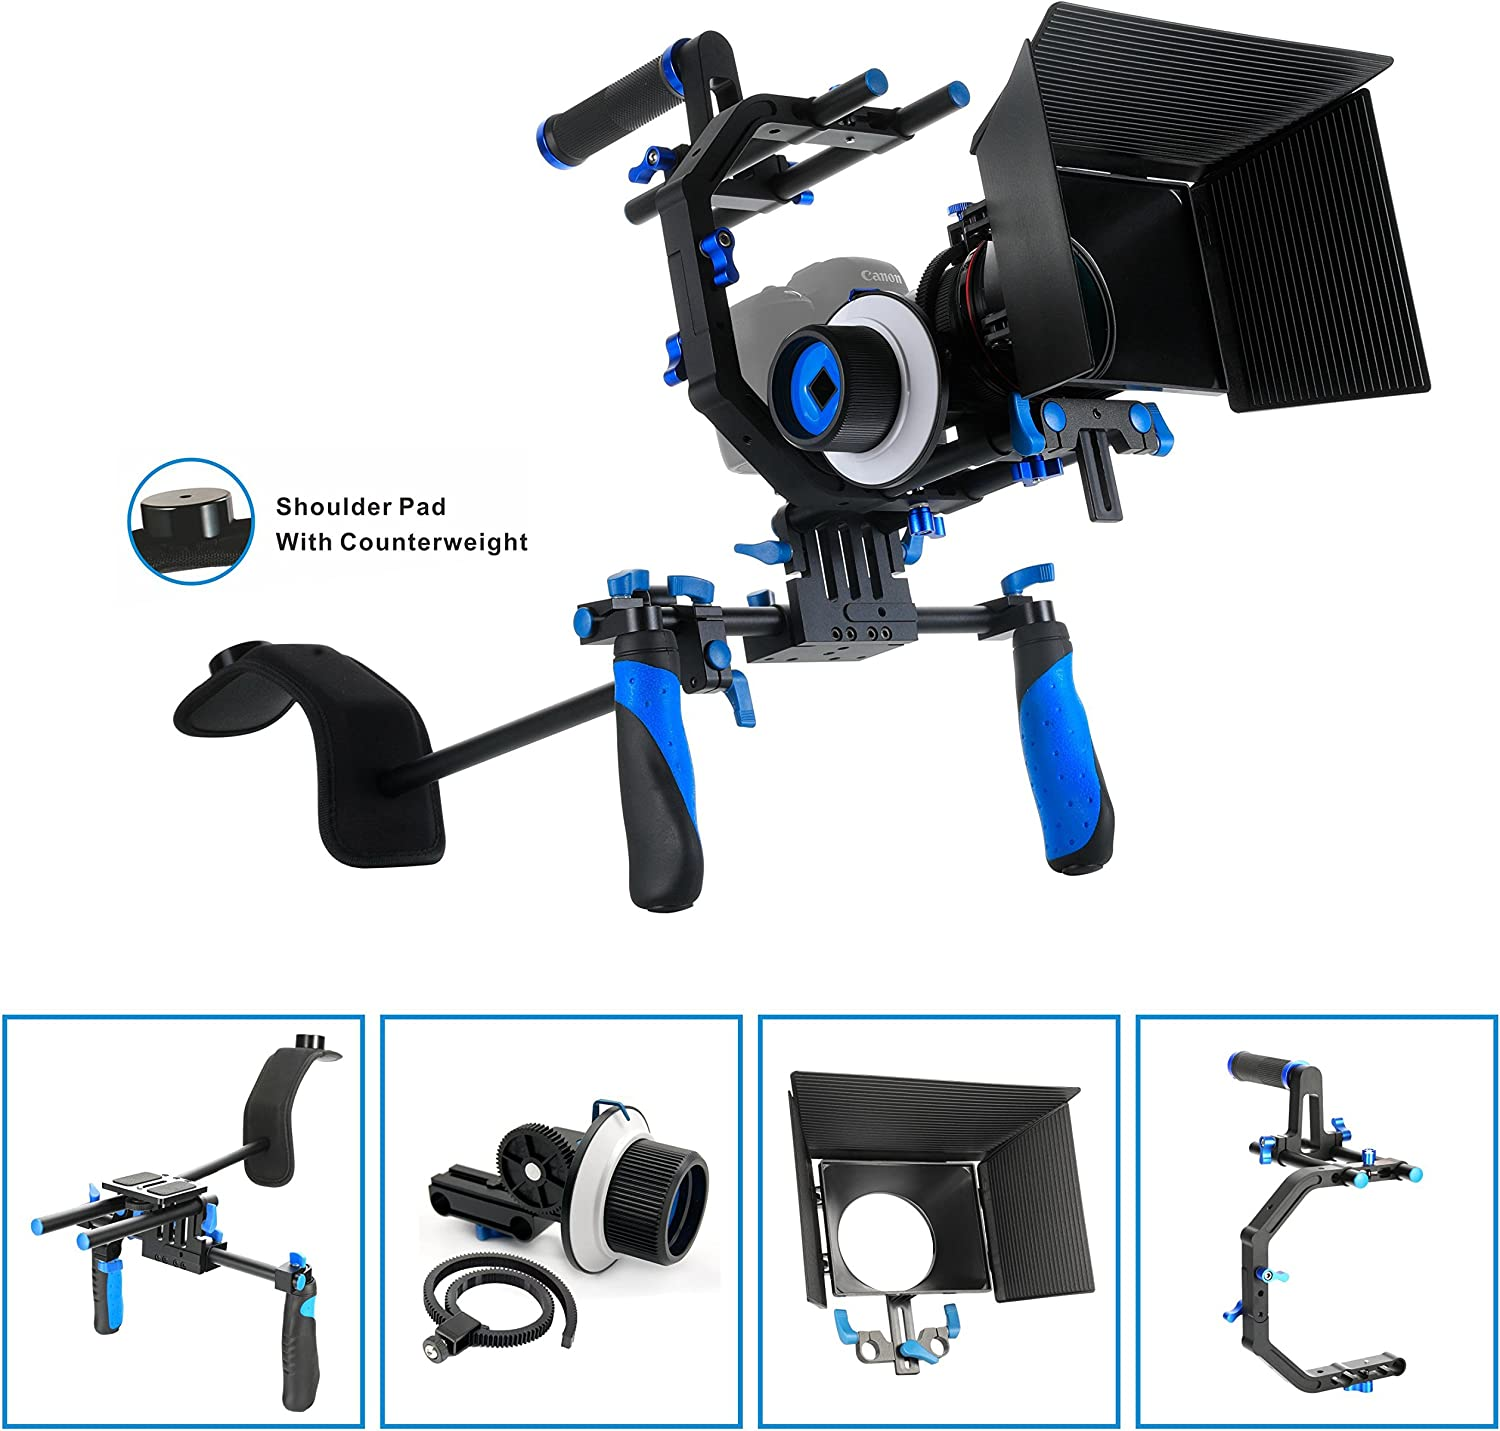 Morros DSLR Rig Shoulder Mount Rig Matte Box for All DSLR Cameras and Video Camcorders Follow Focus not Included